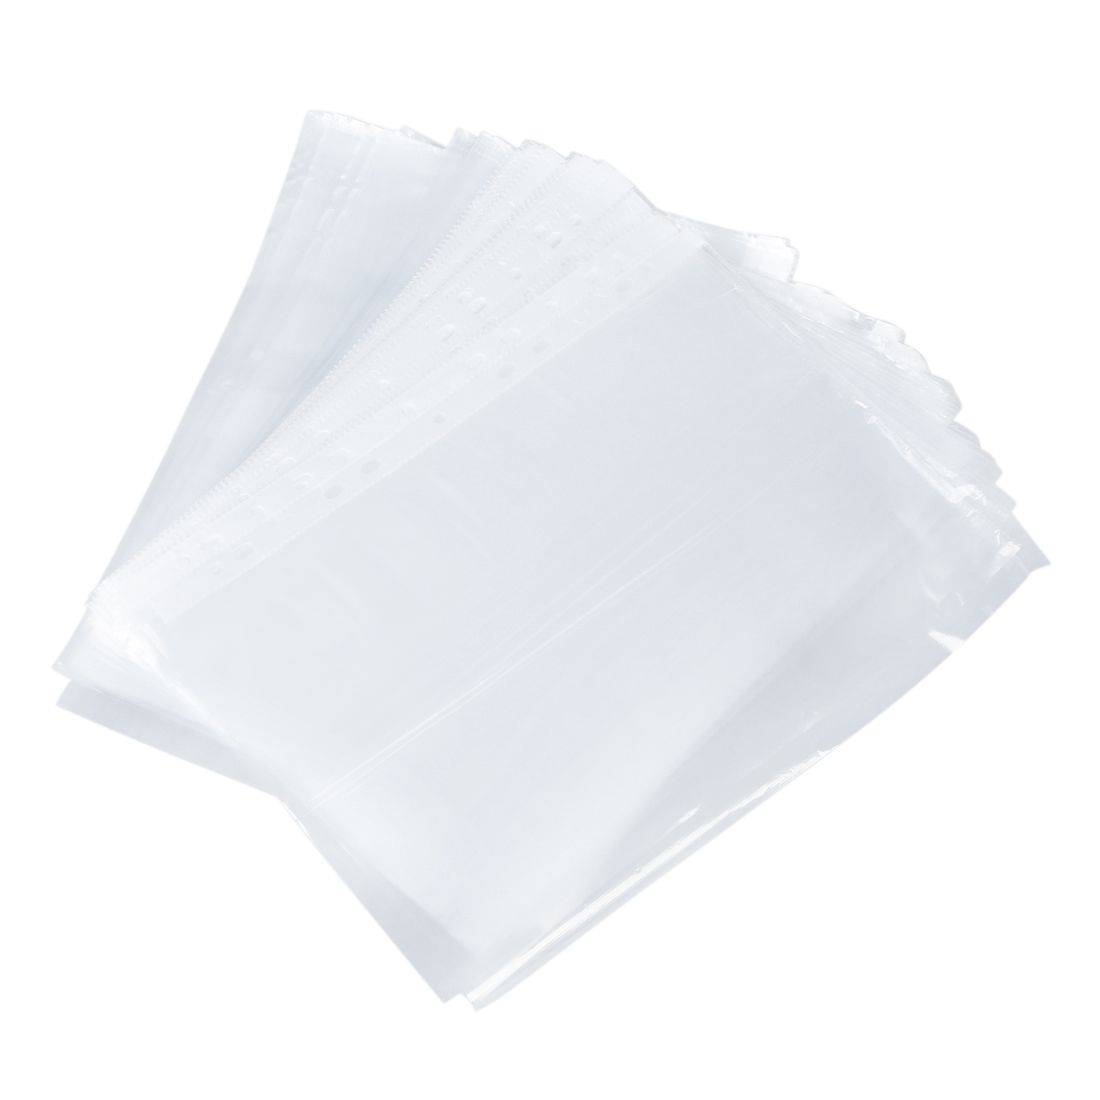 Office School A4 Papers Document Sheet Protector Clear White 100 Pcs